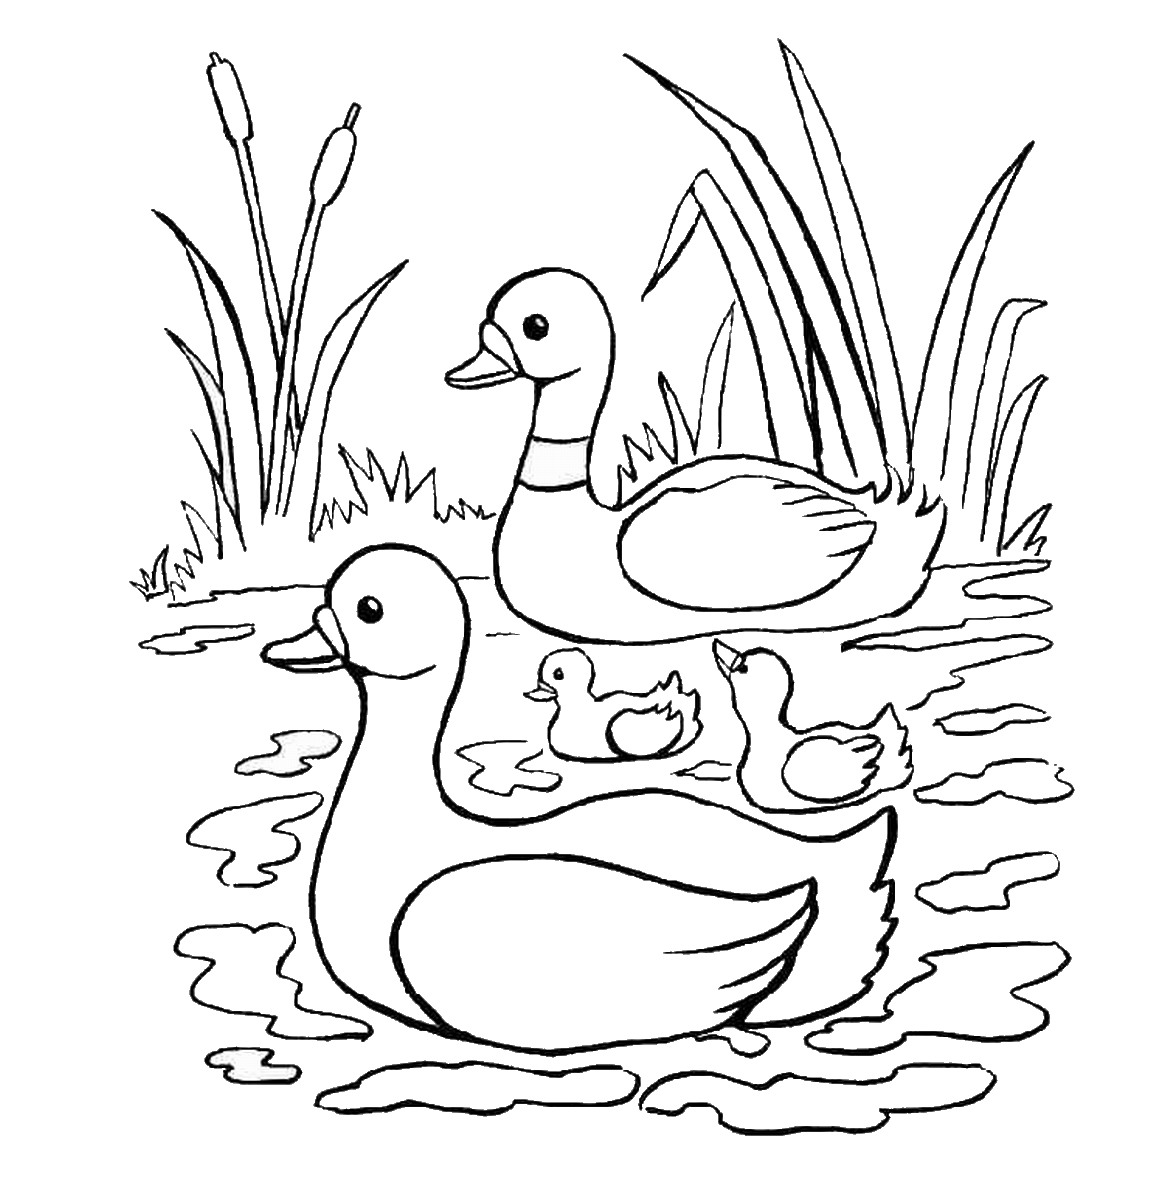 duck coloring book craftsactvities and worksheets for preschooltoddler and duck book coloring